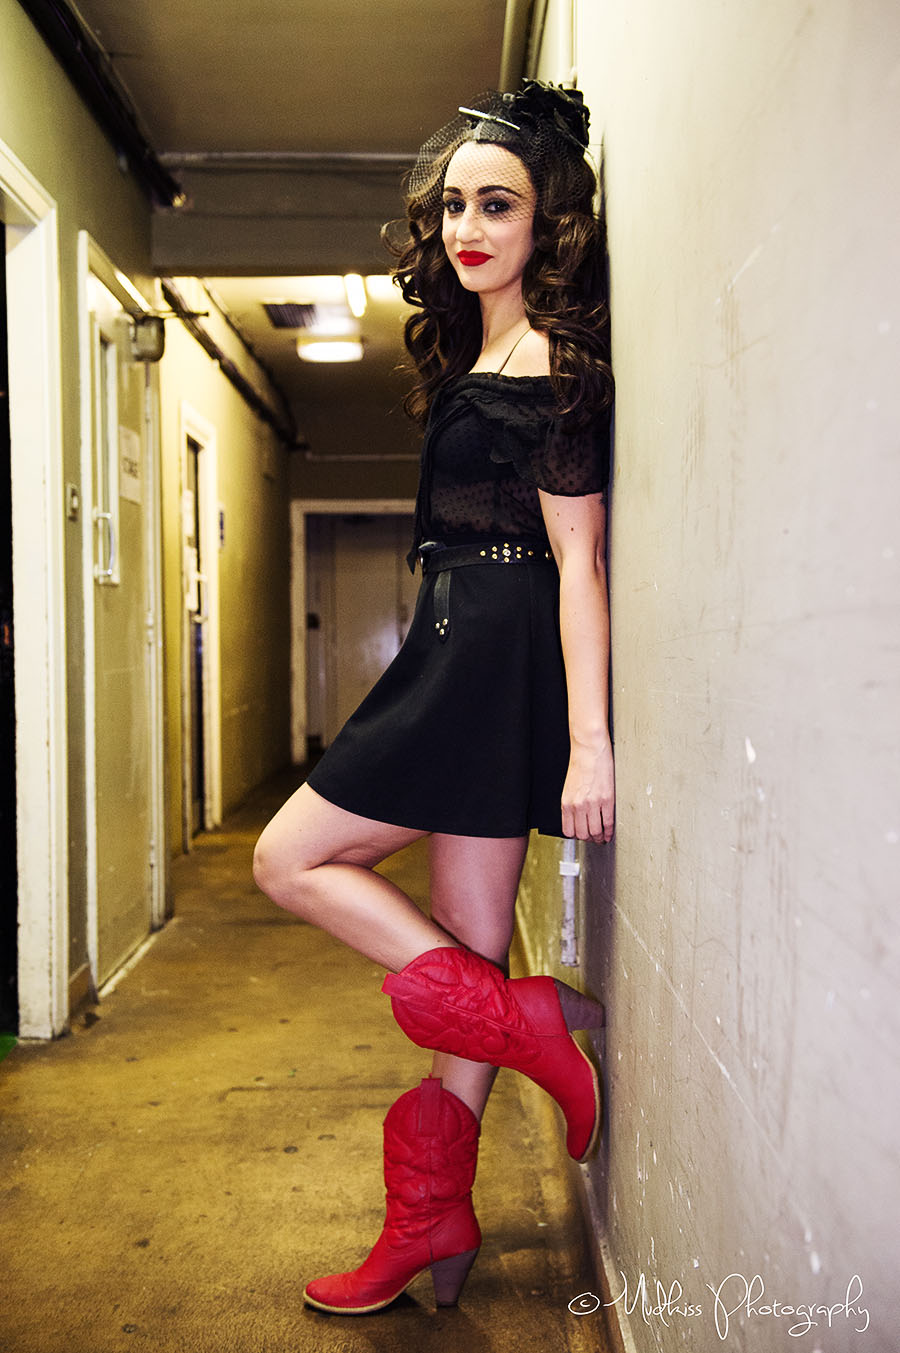 Lindi Ortega Ruby Lounge Manchester Live Review